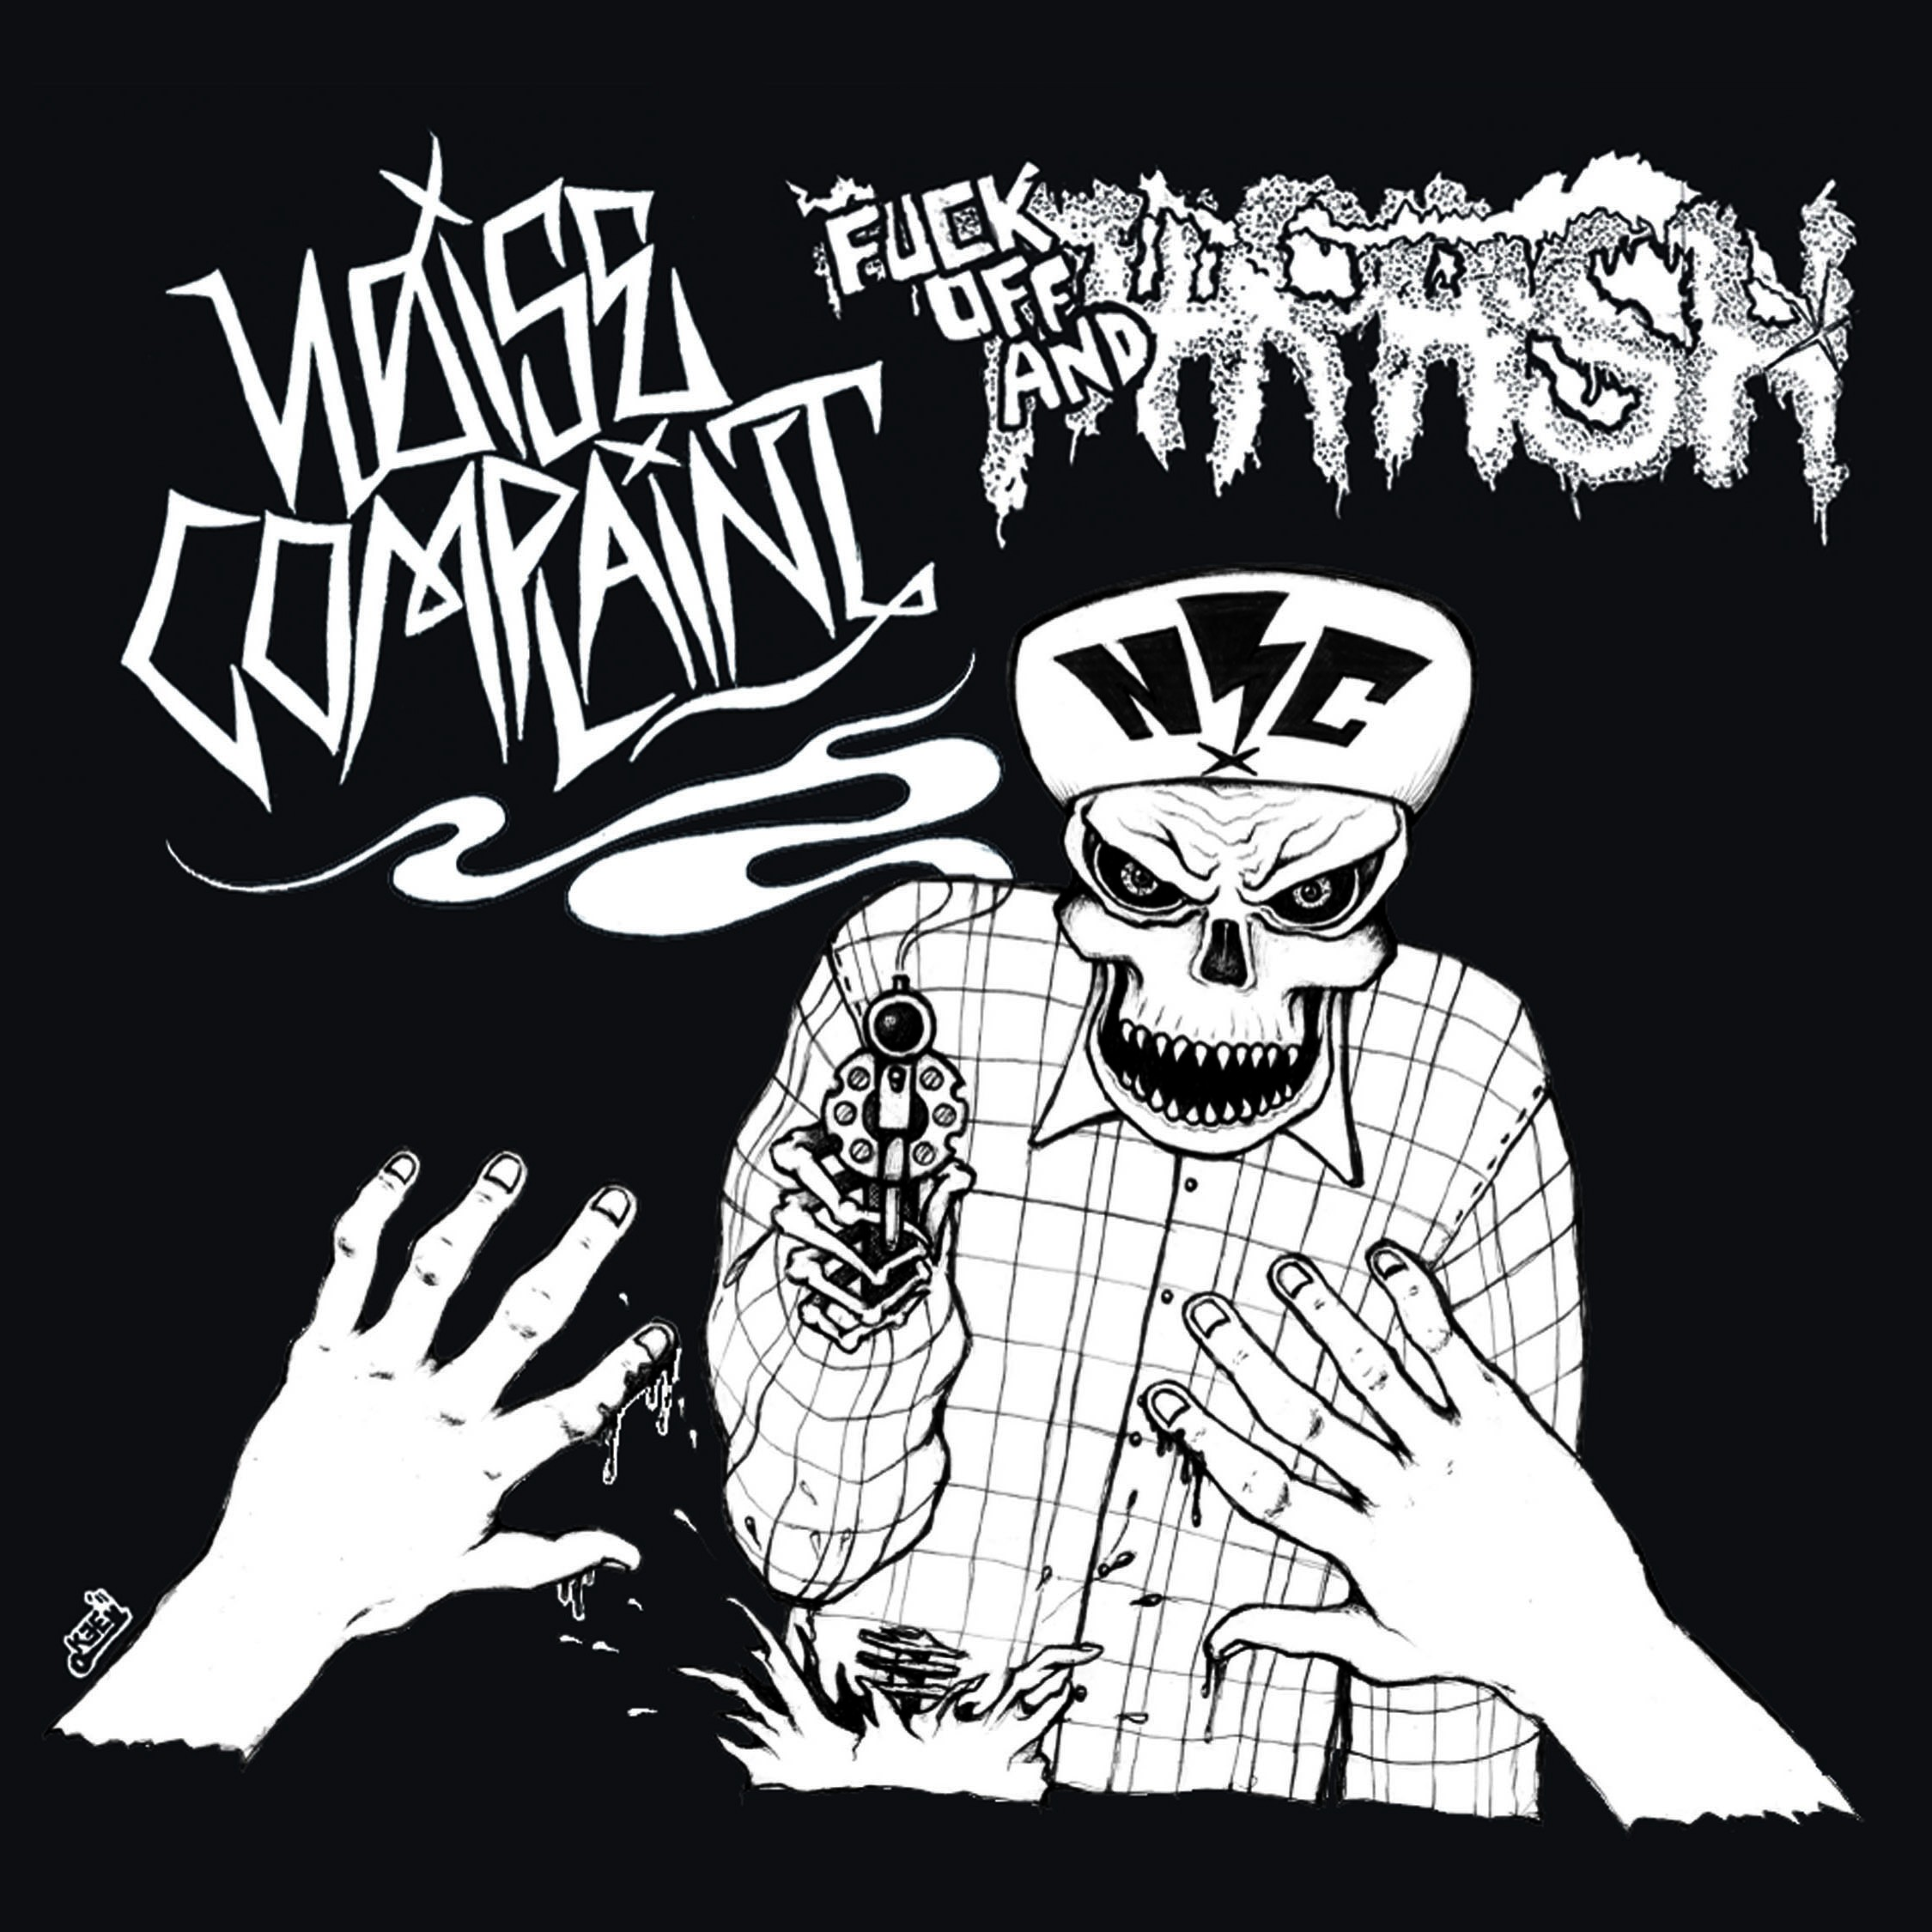 """Noise Complaint - Fuck Off and Thrash - 7"""" Suburban White Trash Records/A World We Never Made/ Assault Skateboards/Plastic Fact/ Anarchotic Records"""